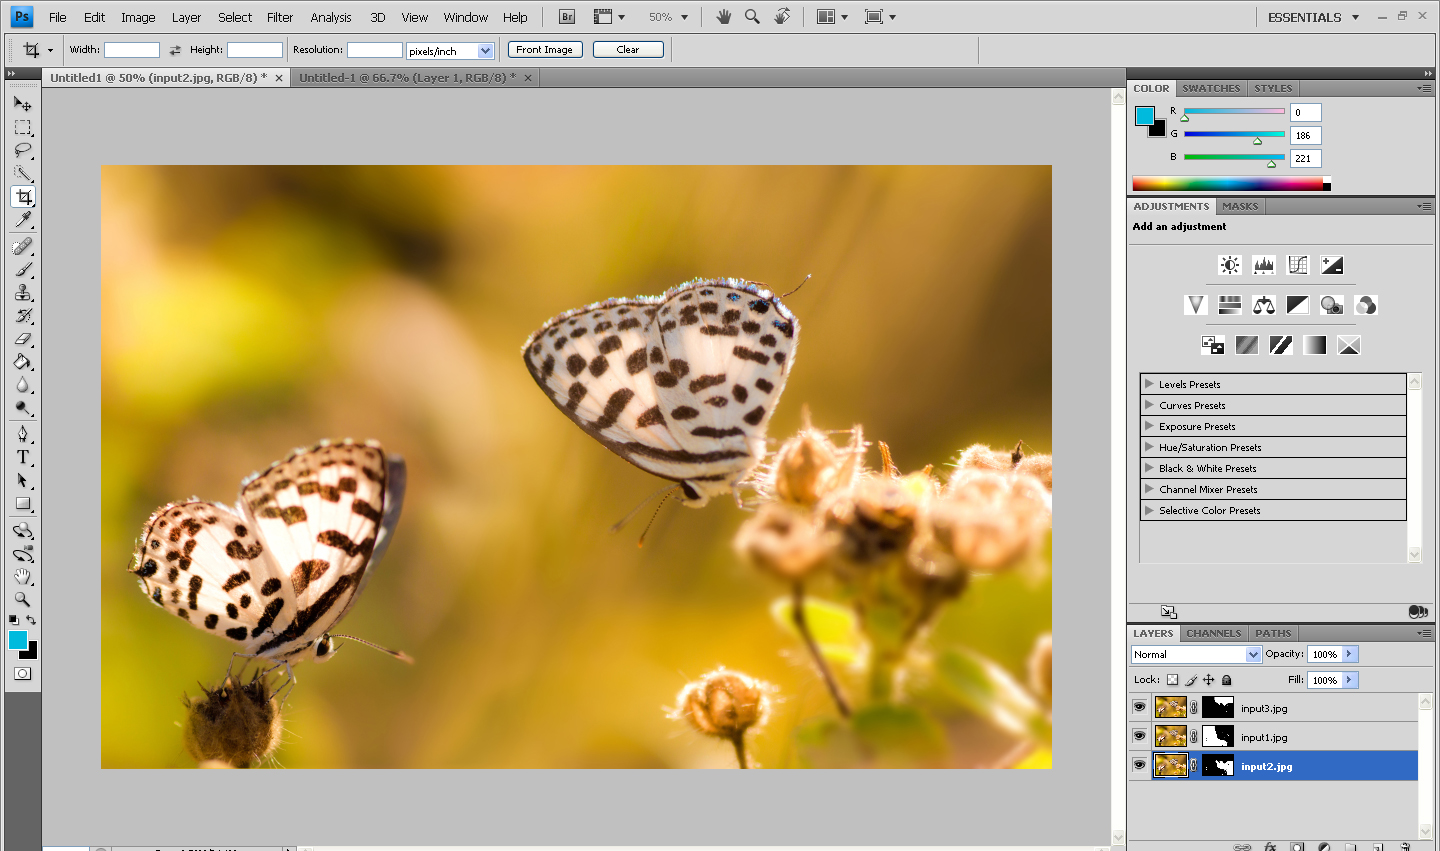 cropping the image in photoshop